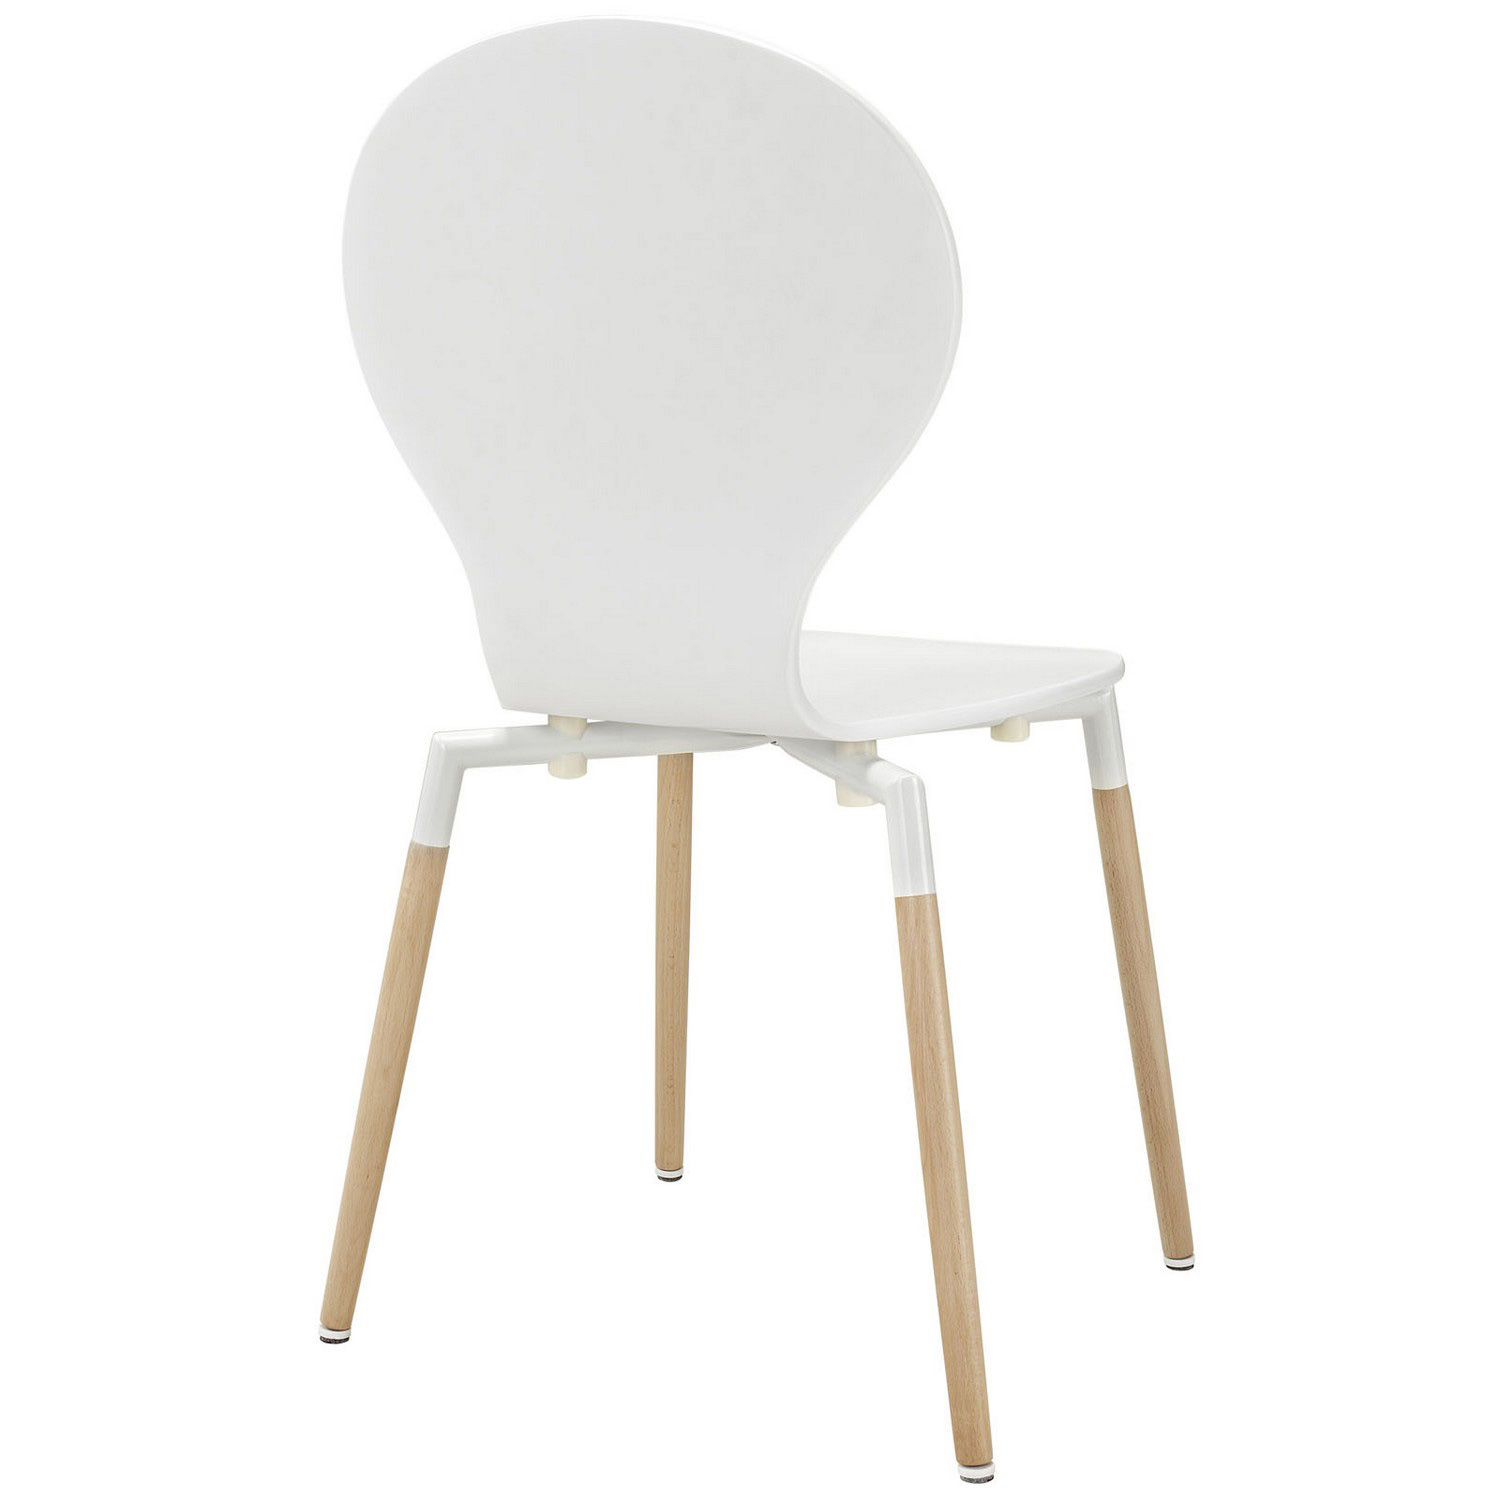 Modway Path Dining Chair Set of 2 - White